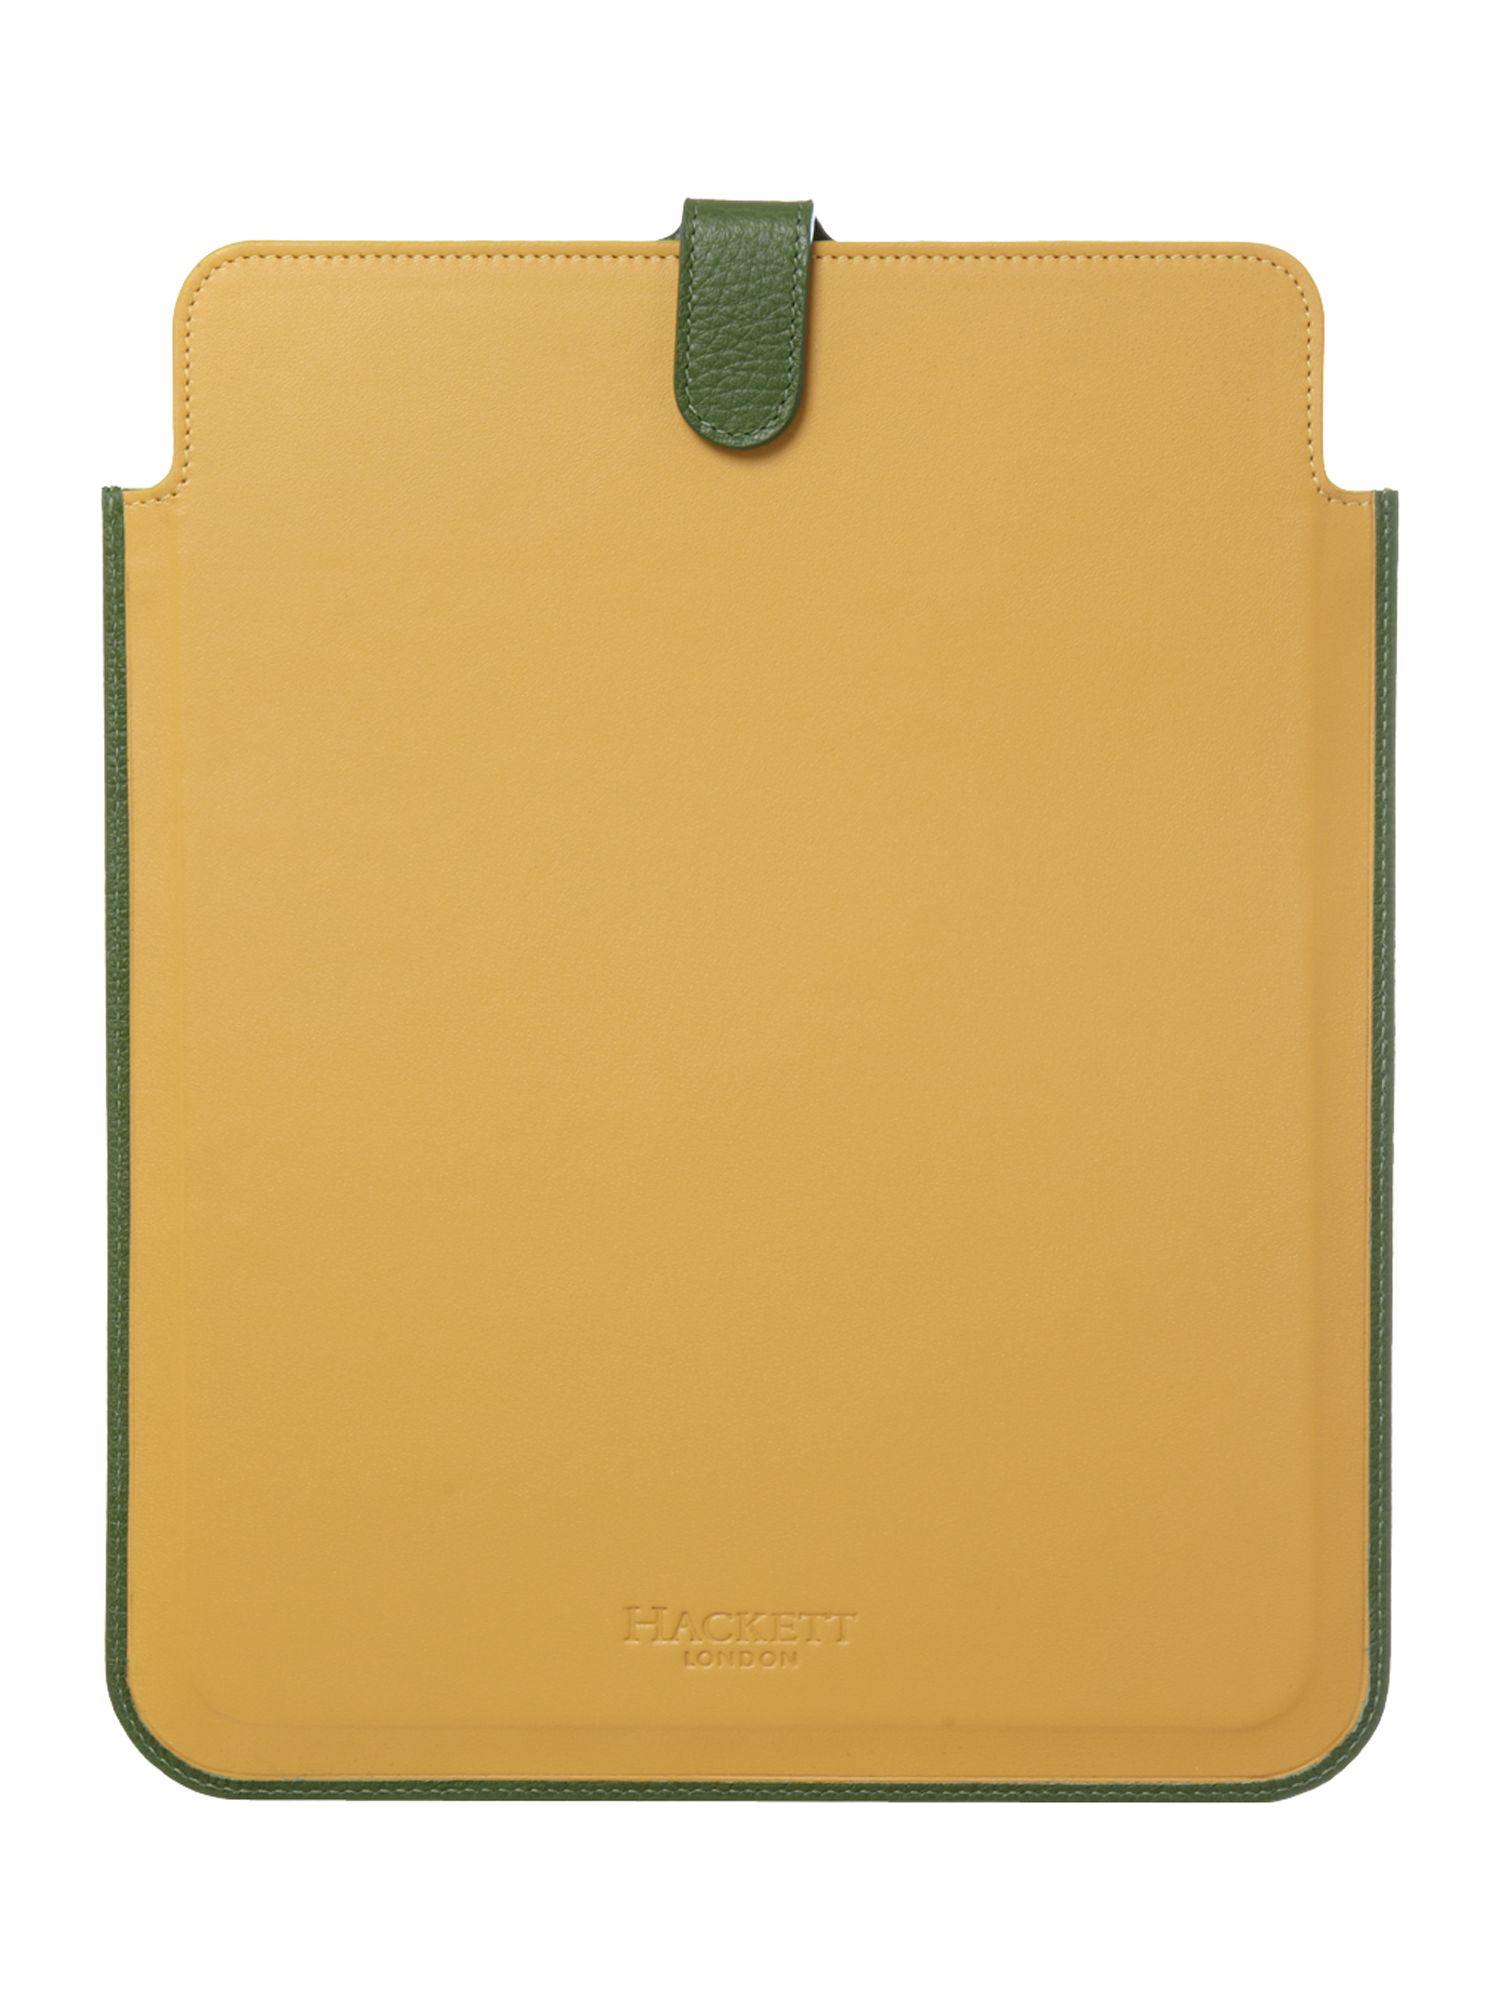 Hackett ipad slip case